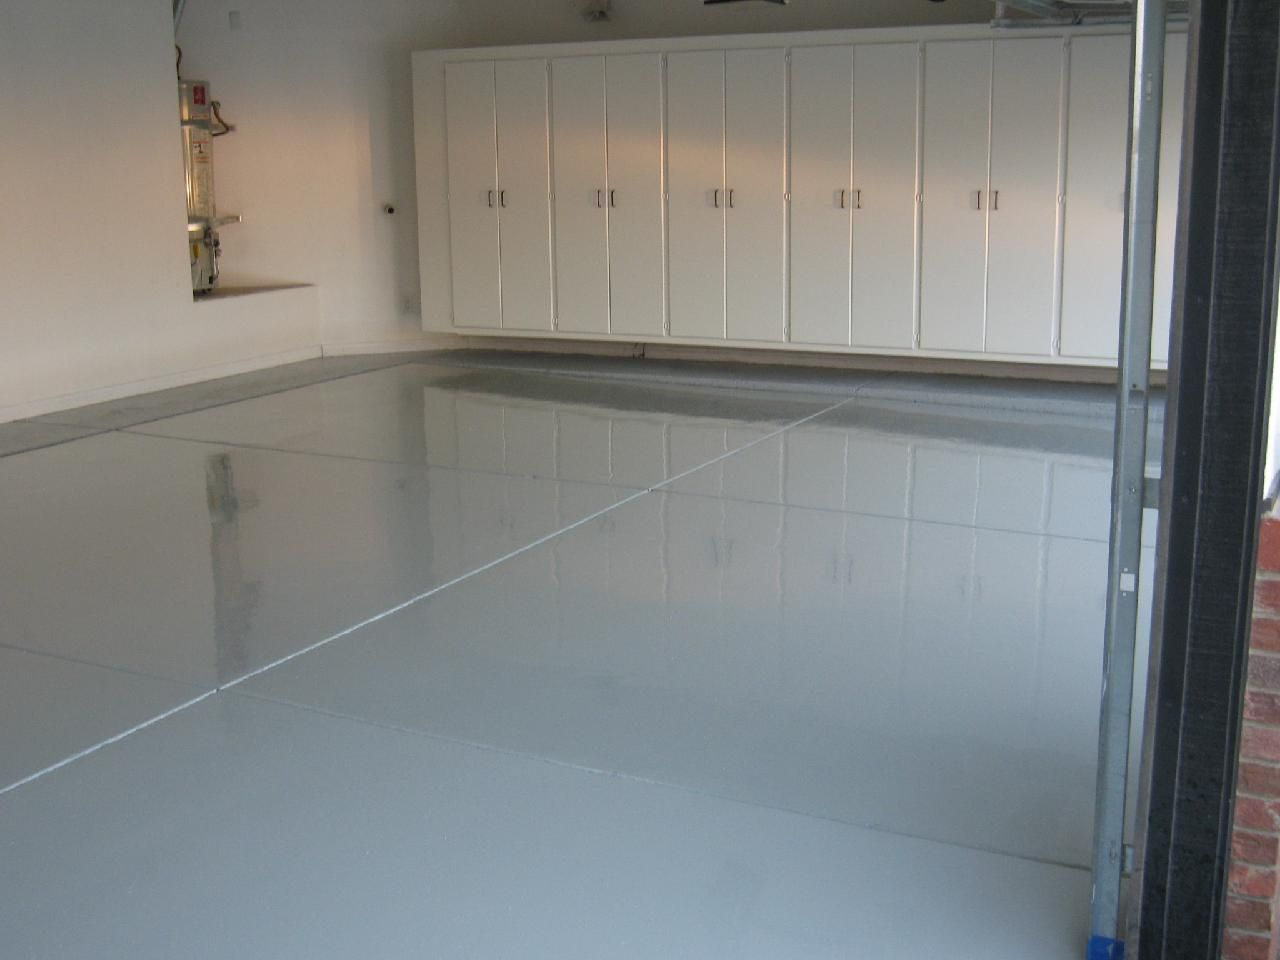 This Is A Gorgeous Finish On The Floor Of This Garage Garage Design Interior Garage Interior Garage Design